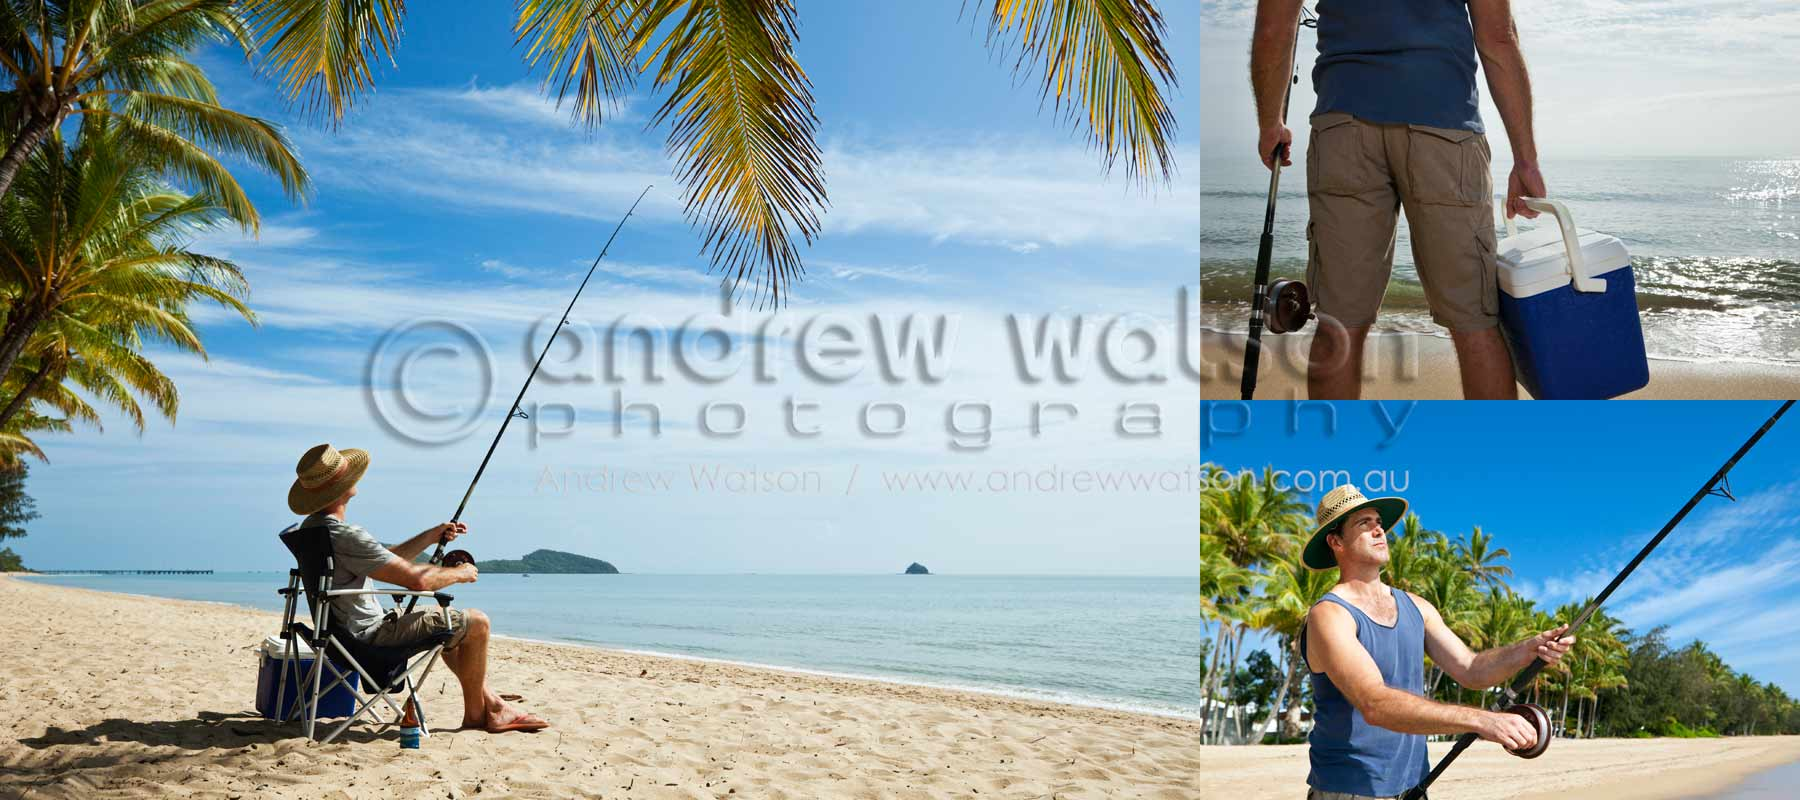 Tourism & Lifestyle Photography - Images of man beach fishing at Palm Cove, North Queensland